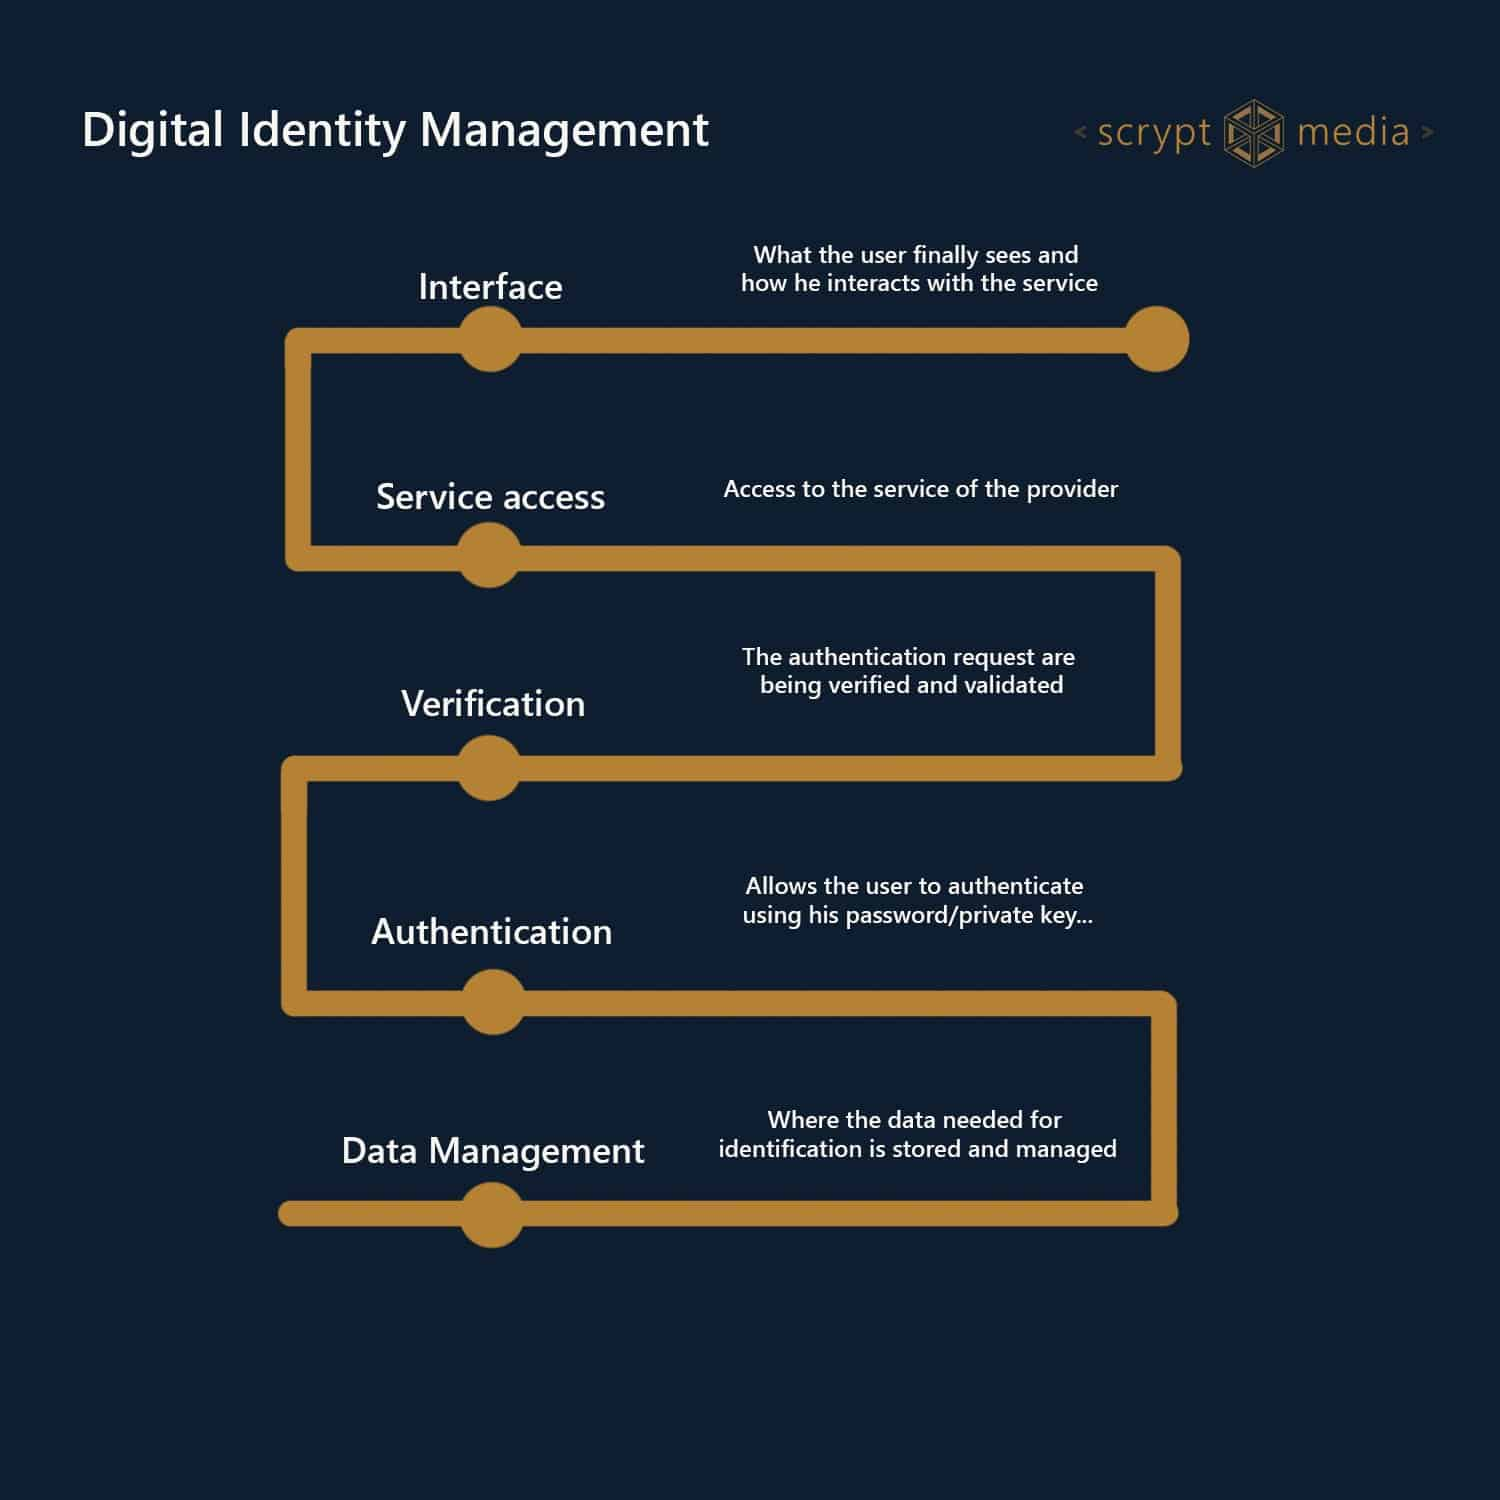 The levels of Digital Identity Management